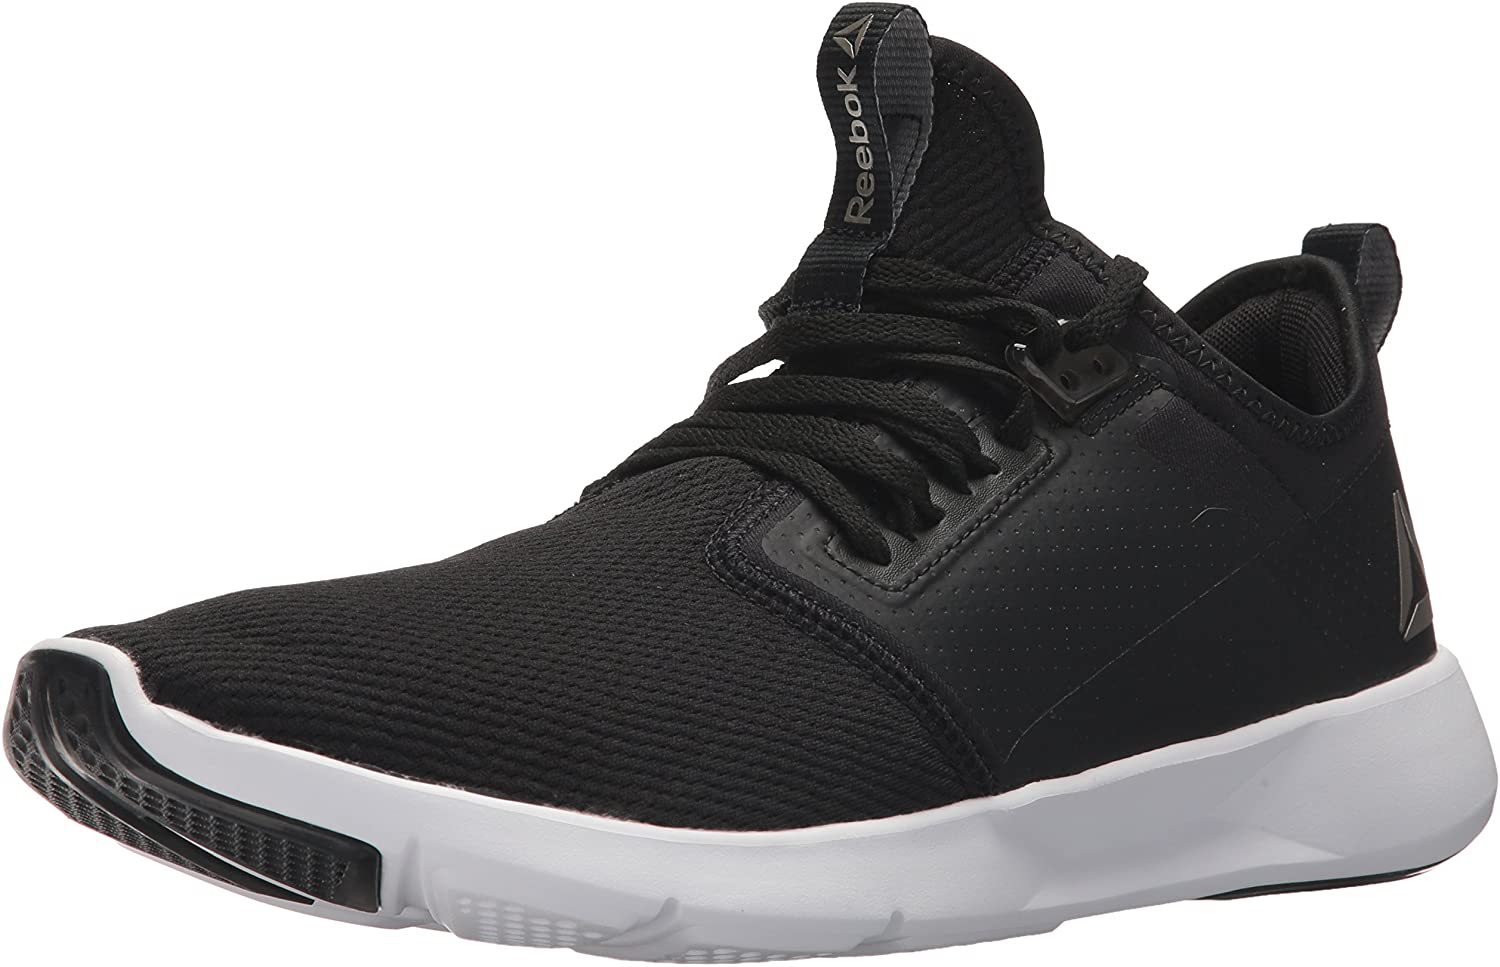 Reebok Men's Plus Lite 2.0 Running shoes